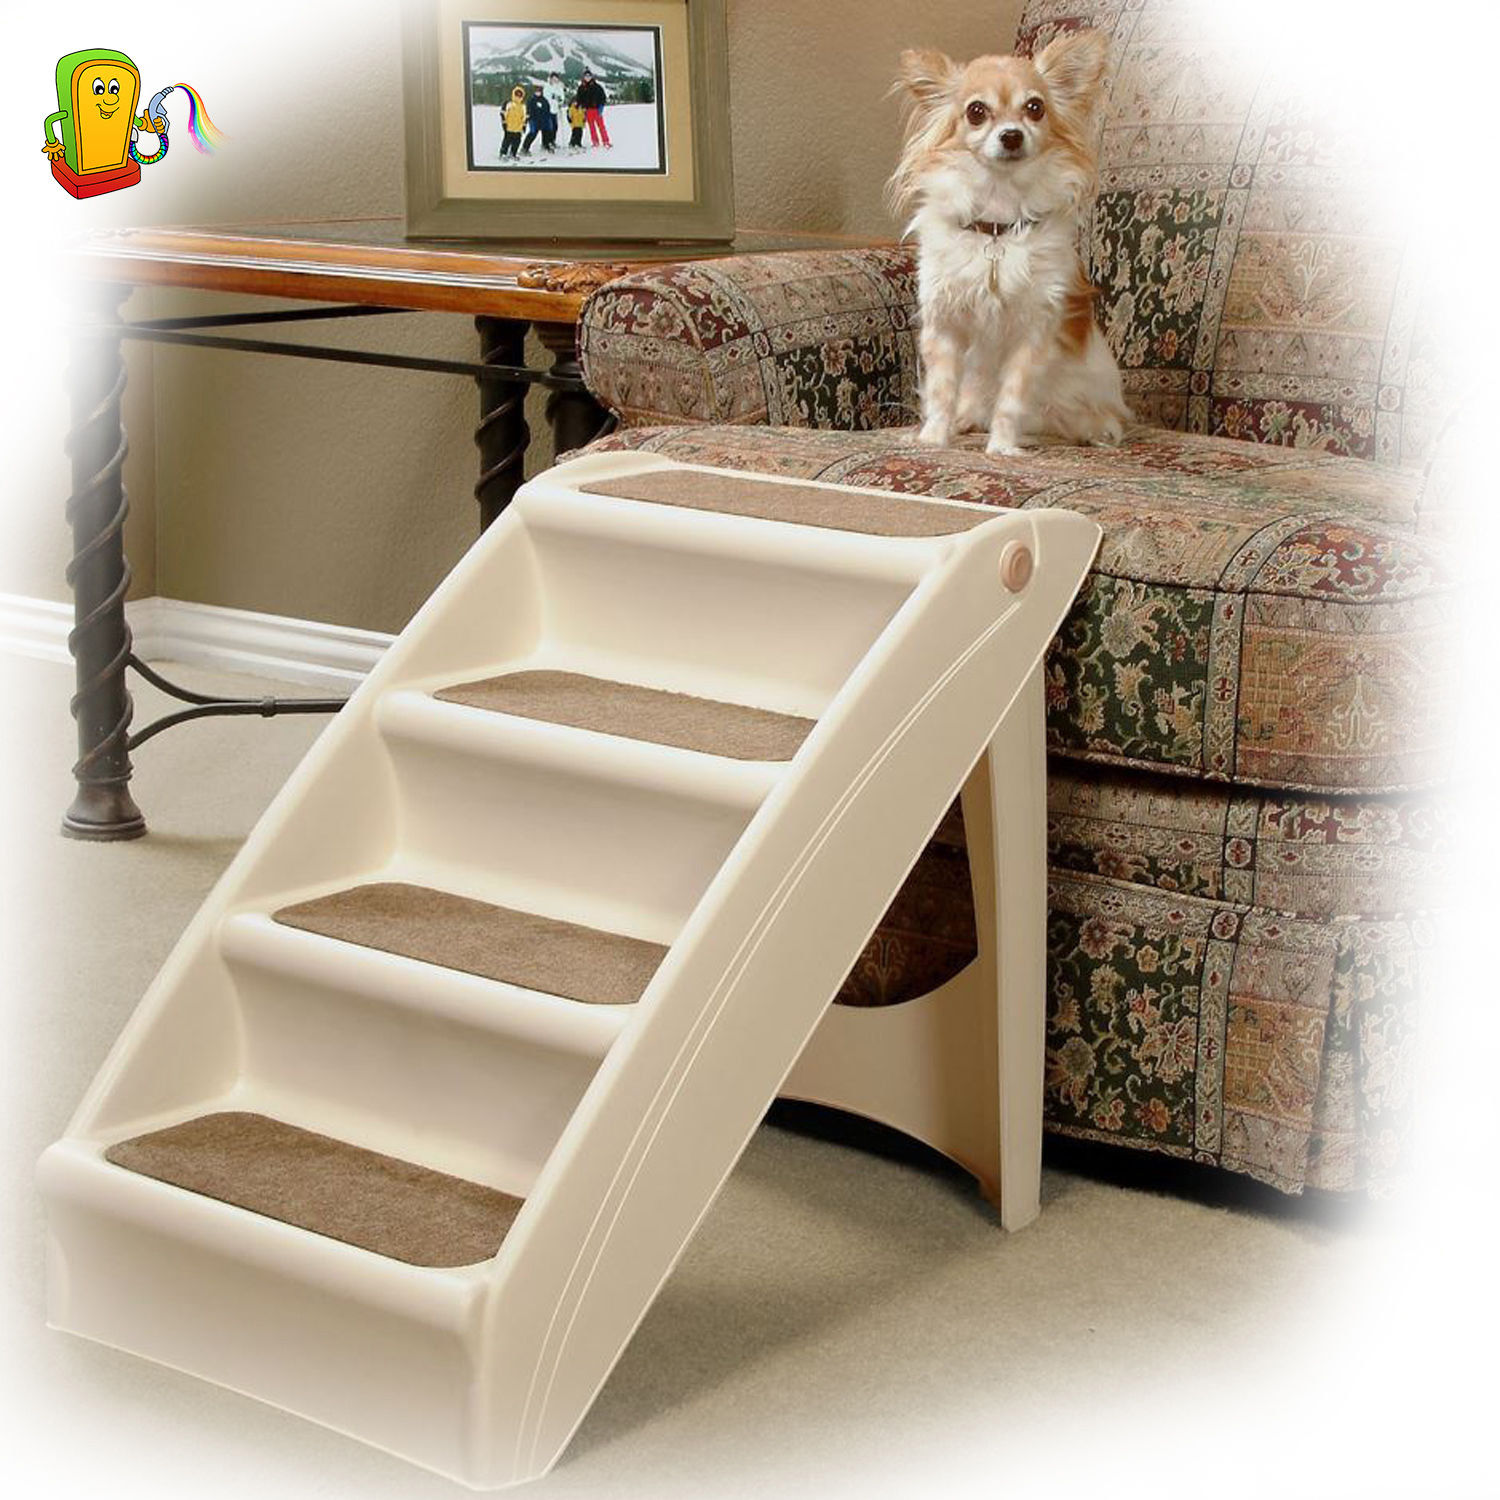 Folding Pet Stairs Dog Cat Step Ramp Ladder Small Portable For Tall Beds  Travel